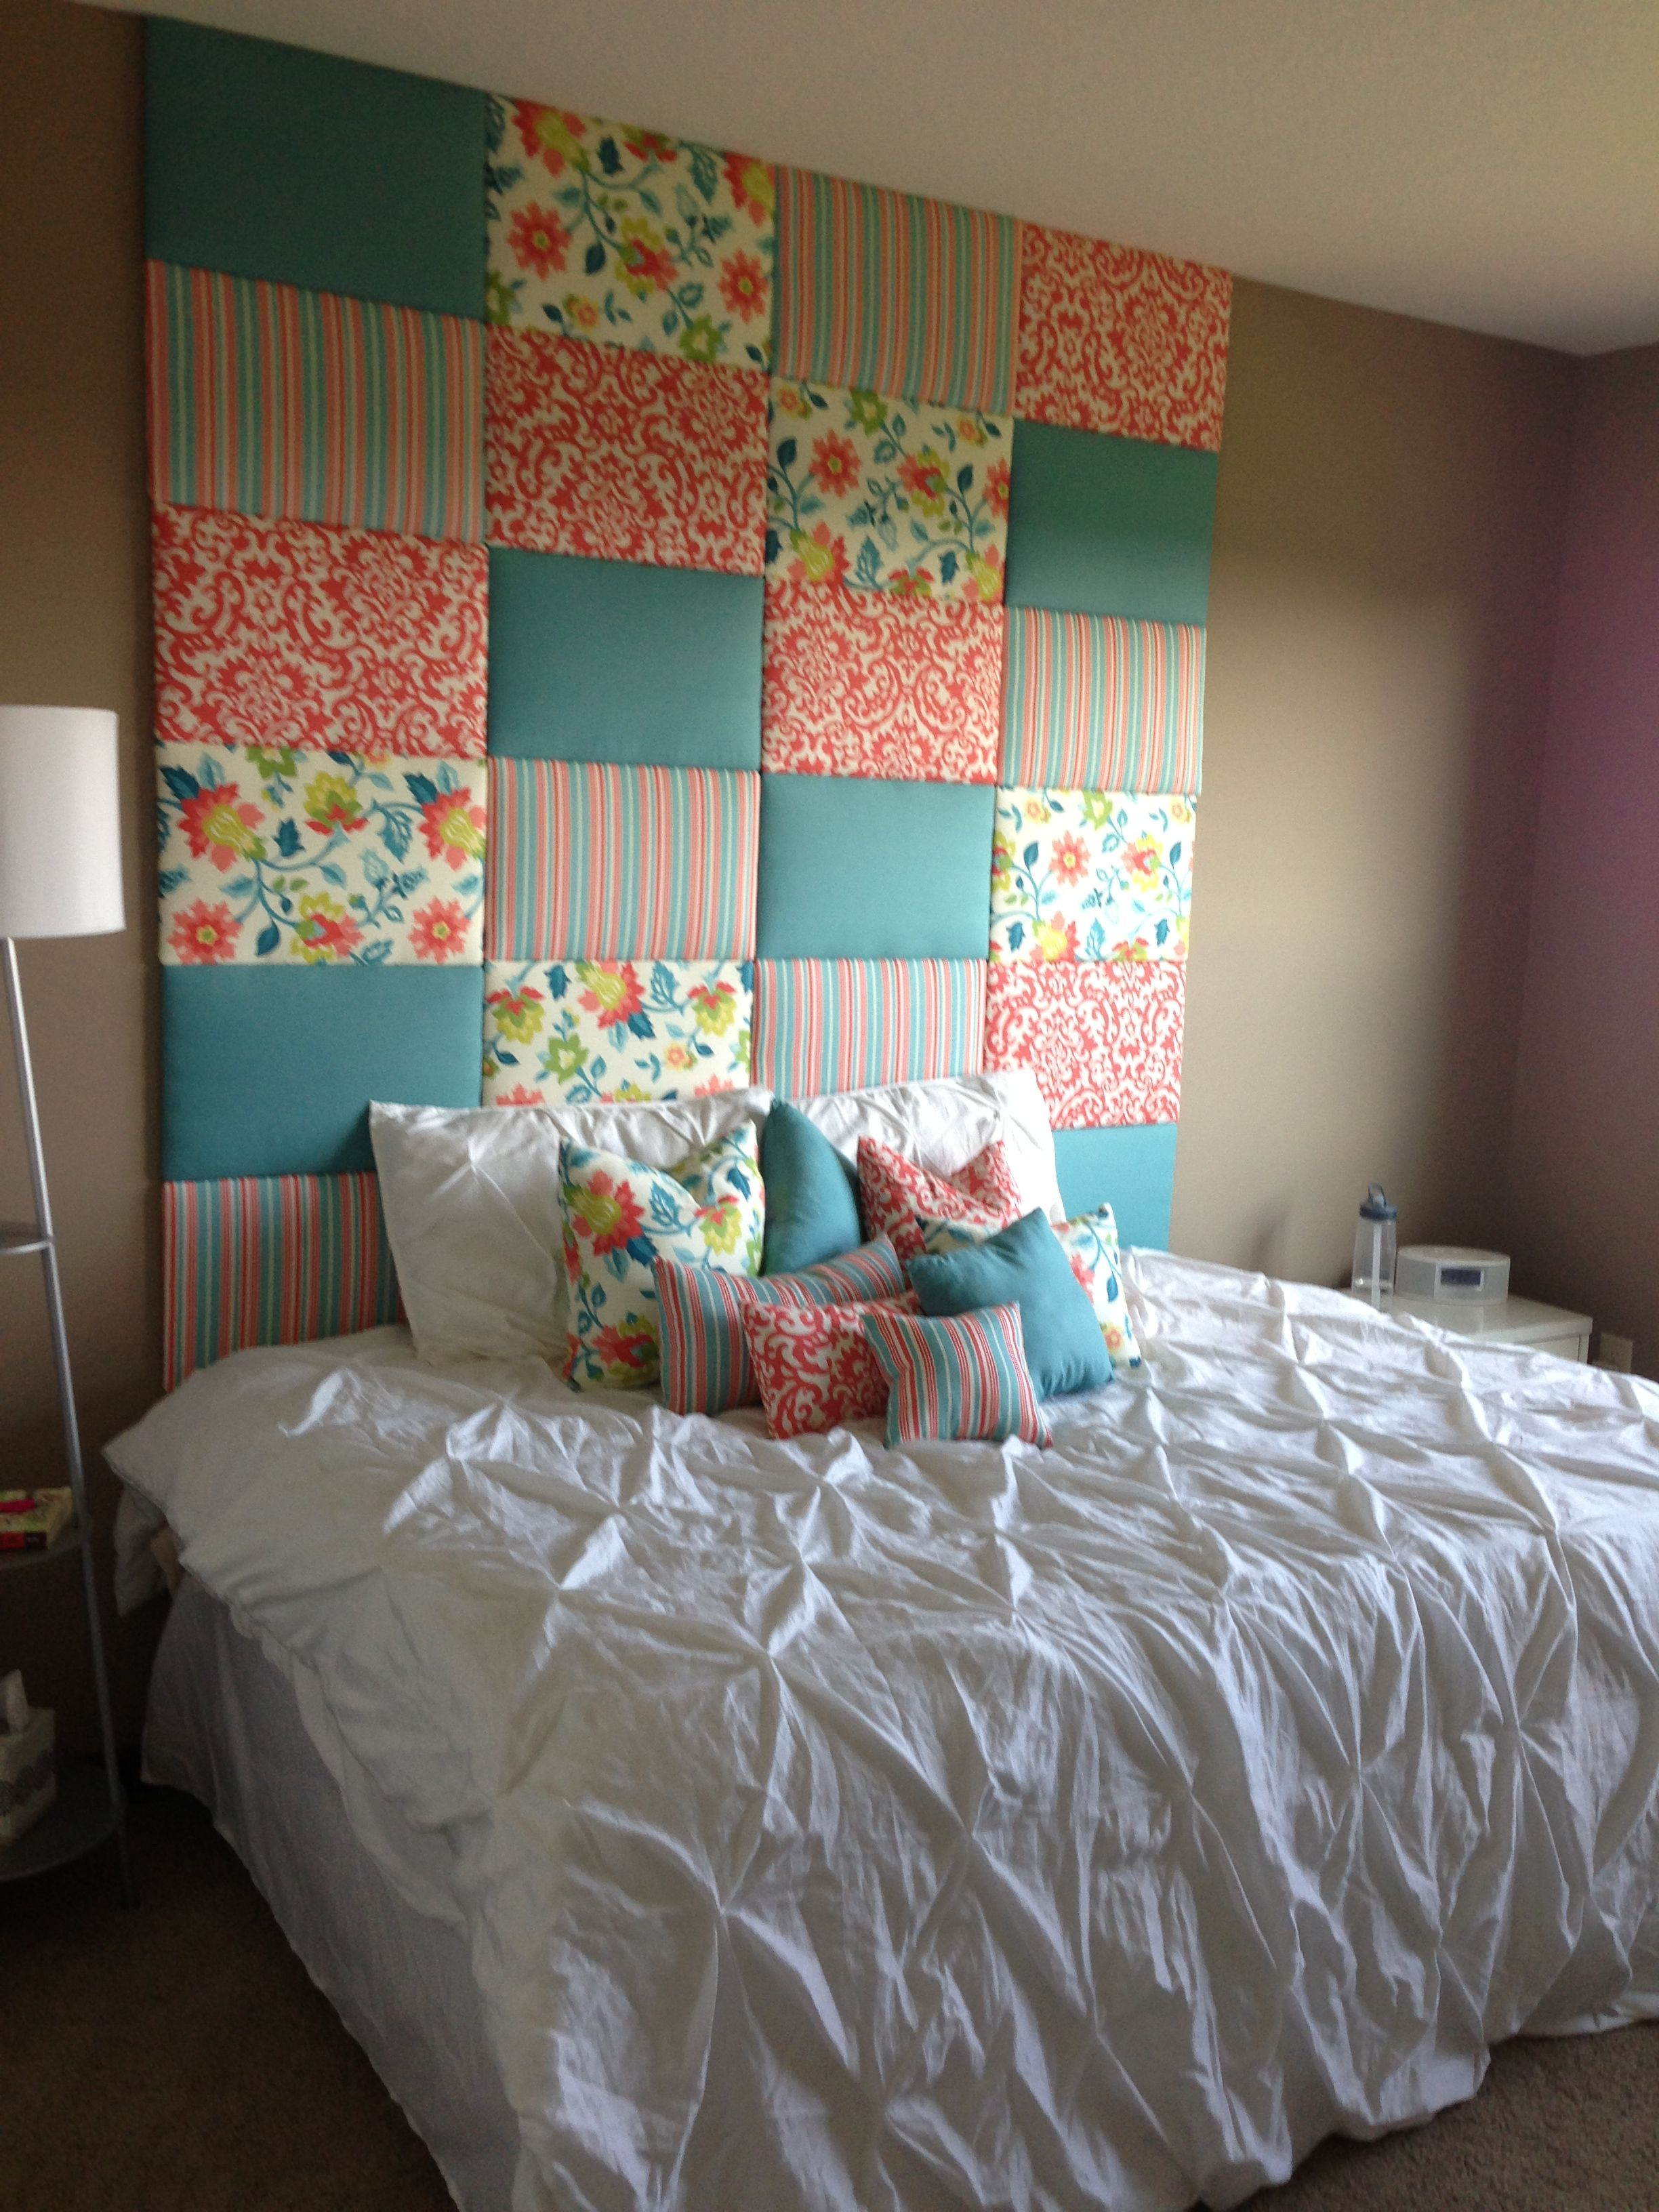 Homemade Headboard Is Made Out Of Plywood Batting And Fabric